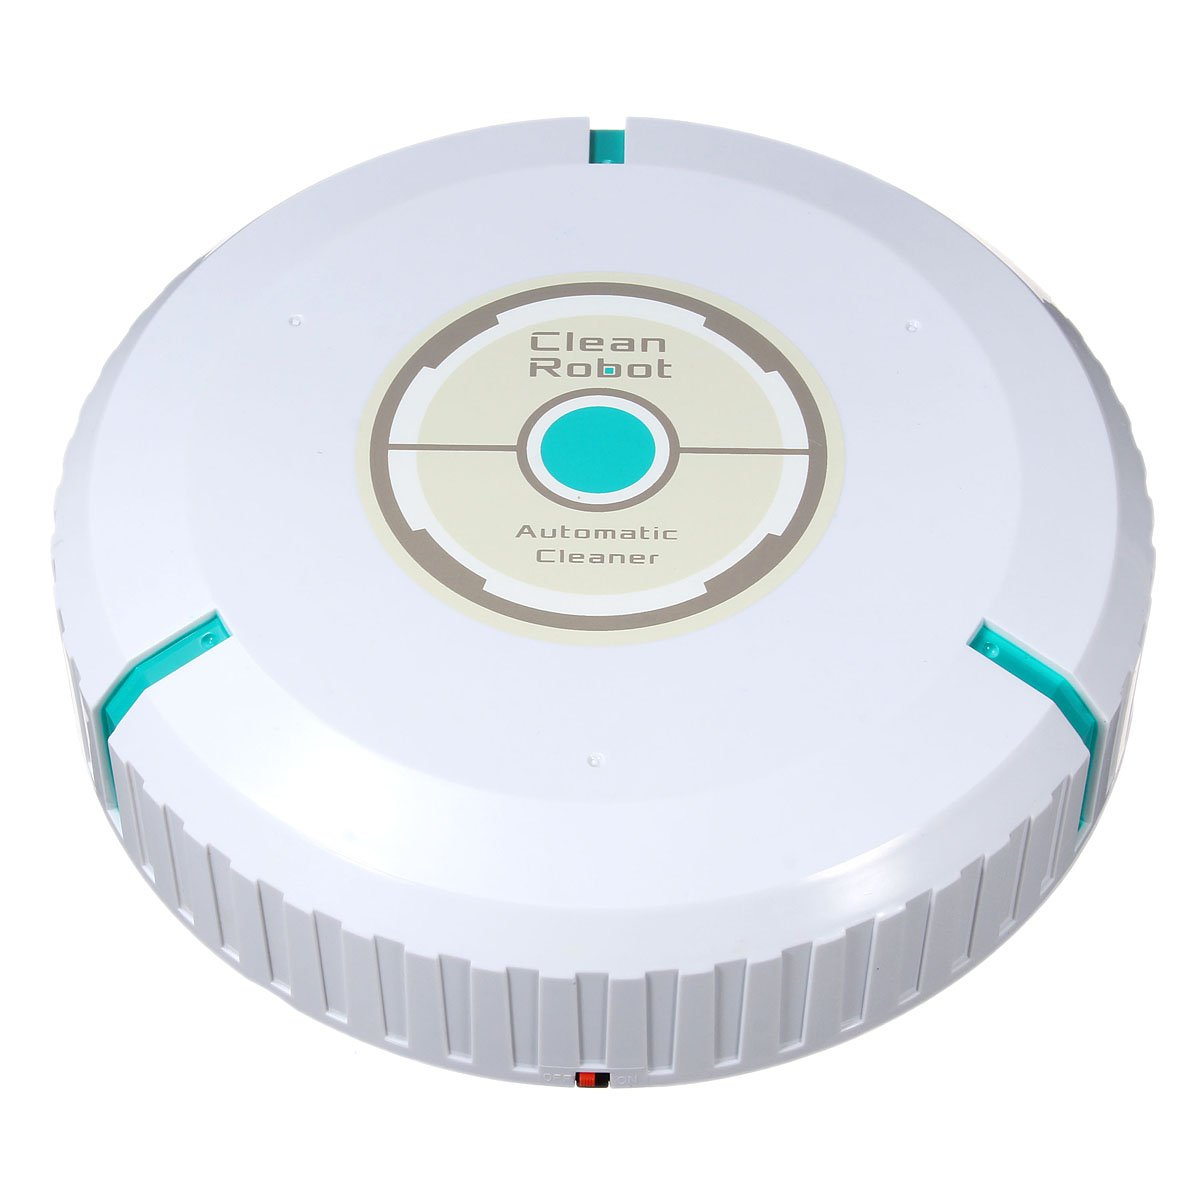 M.Way 9 inch Wireless Home Robotic Smart Auto Cleaner Robot with Microfiber Tissue Remove Dust Cleaning Helper White